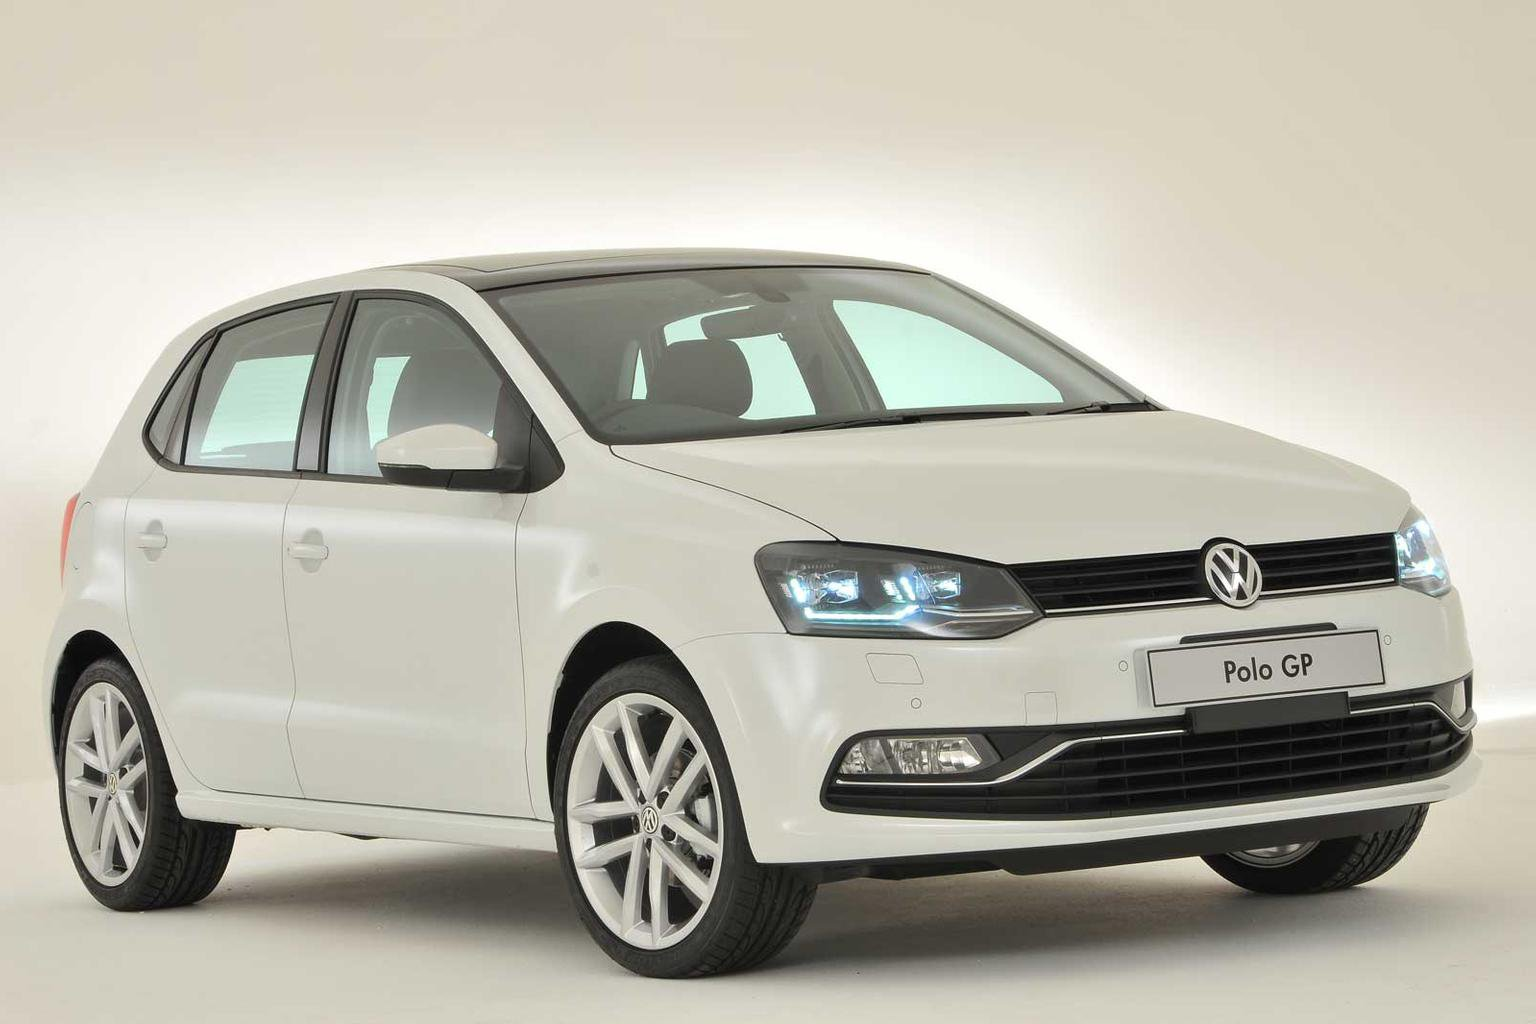 2014 Volkswagen Polo prices revealed